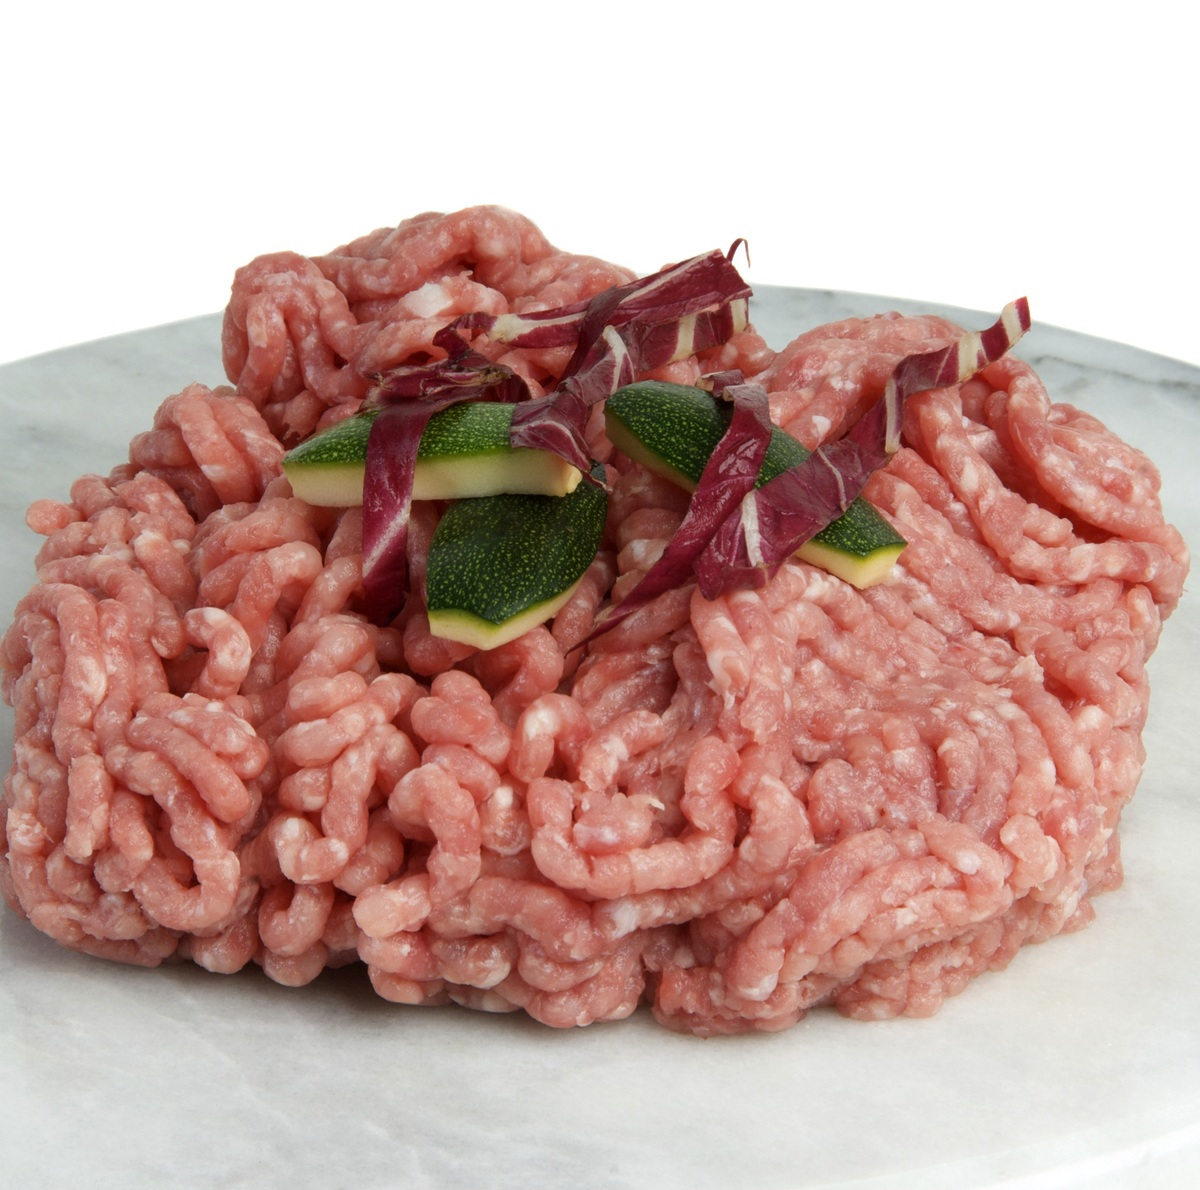 Fresh Turkey Buy Fresh Turkey Breast Mince Online Campbells Prime Meat At Campbells Meat